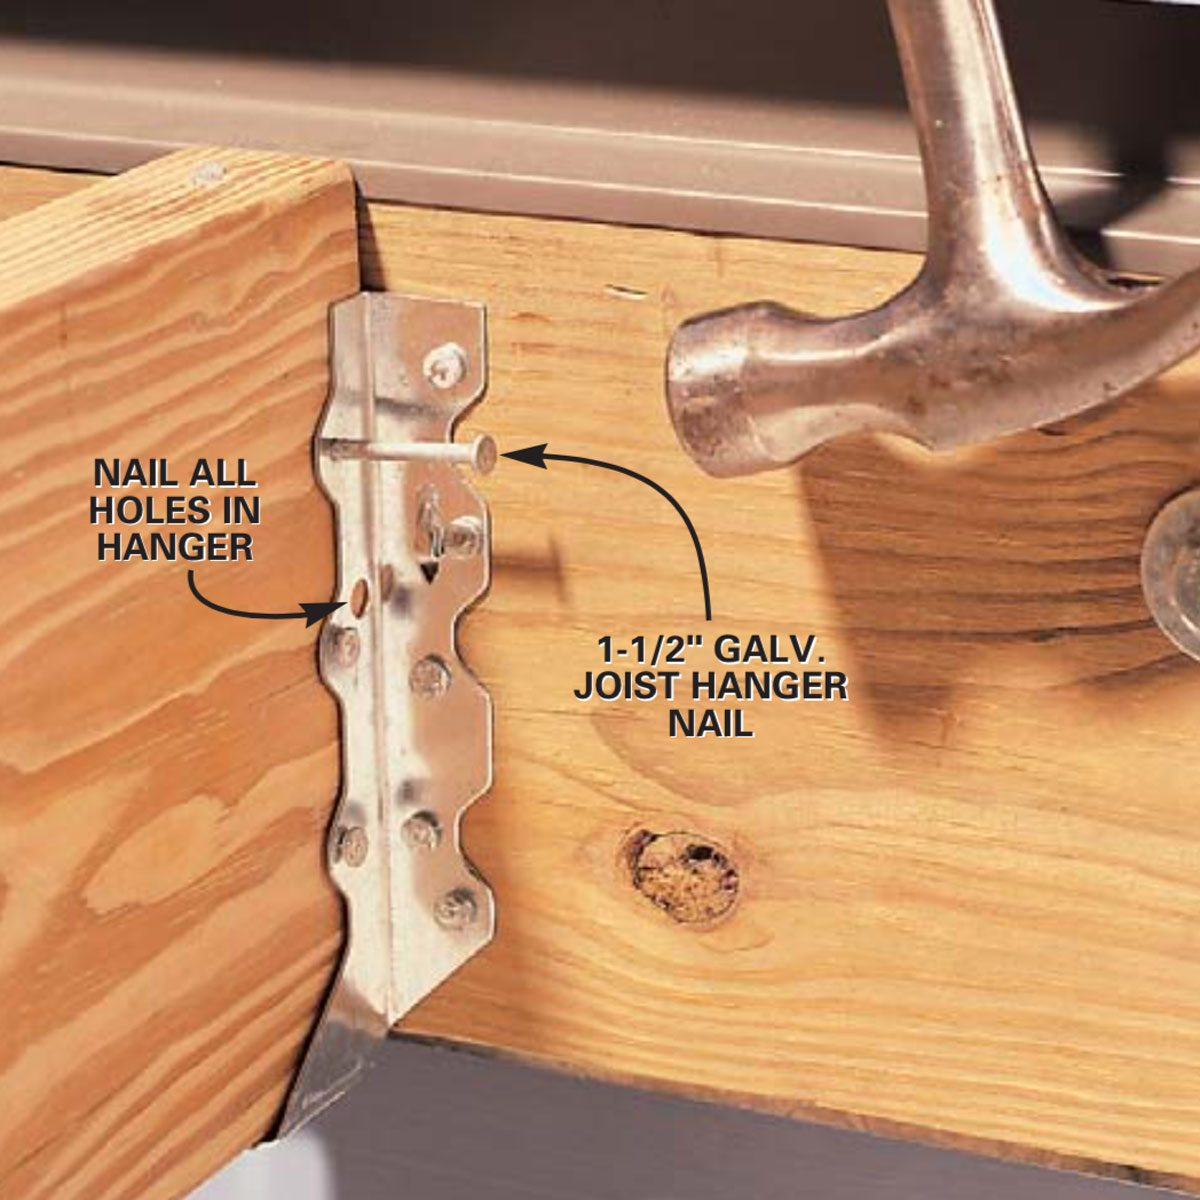 How to Install Joist Hangers | Family Handyman